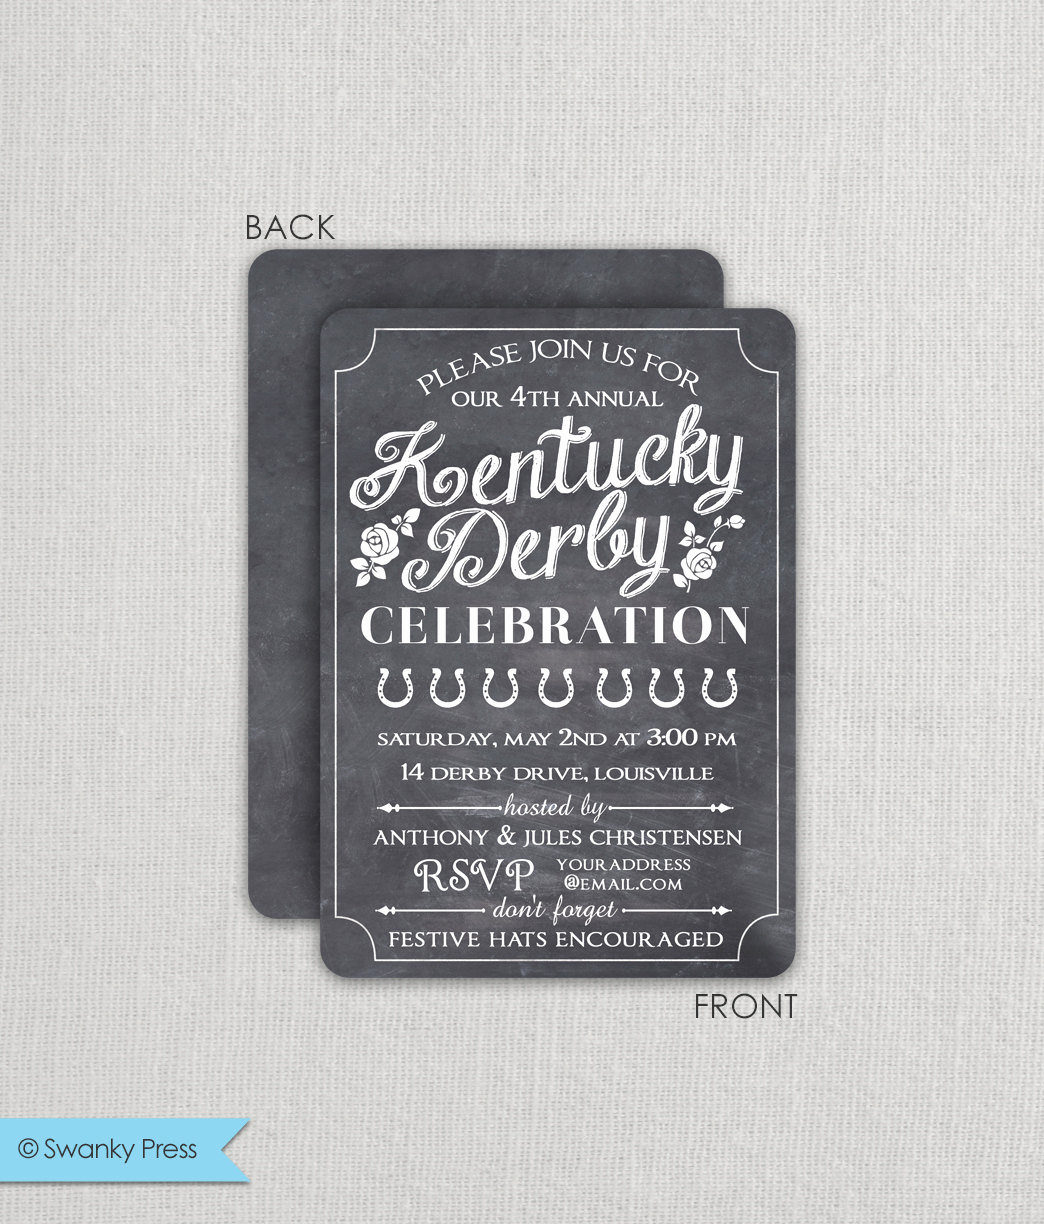 Kentucky Derby Party Invitation Wording Luxury Kentucky Derby Invitation Derby Party Invitation Run for